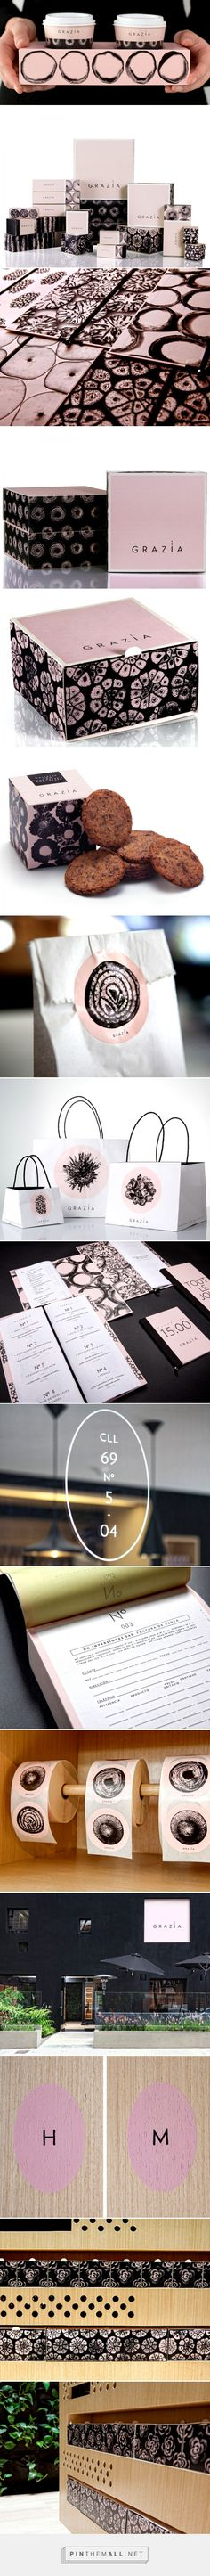 Grazia. Delicacies of Salt and Sweet. — The Dieline - Branding & Packaging - created via http://pinthemall.net